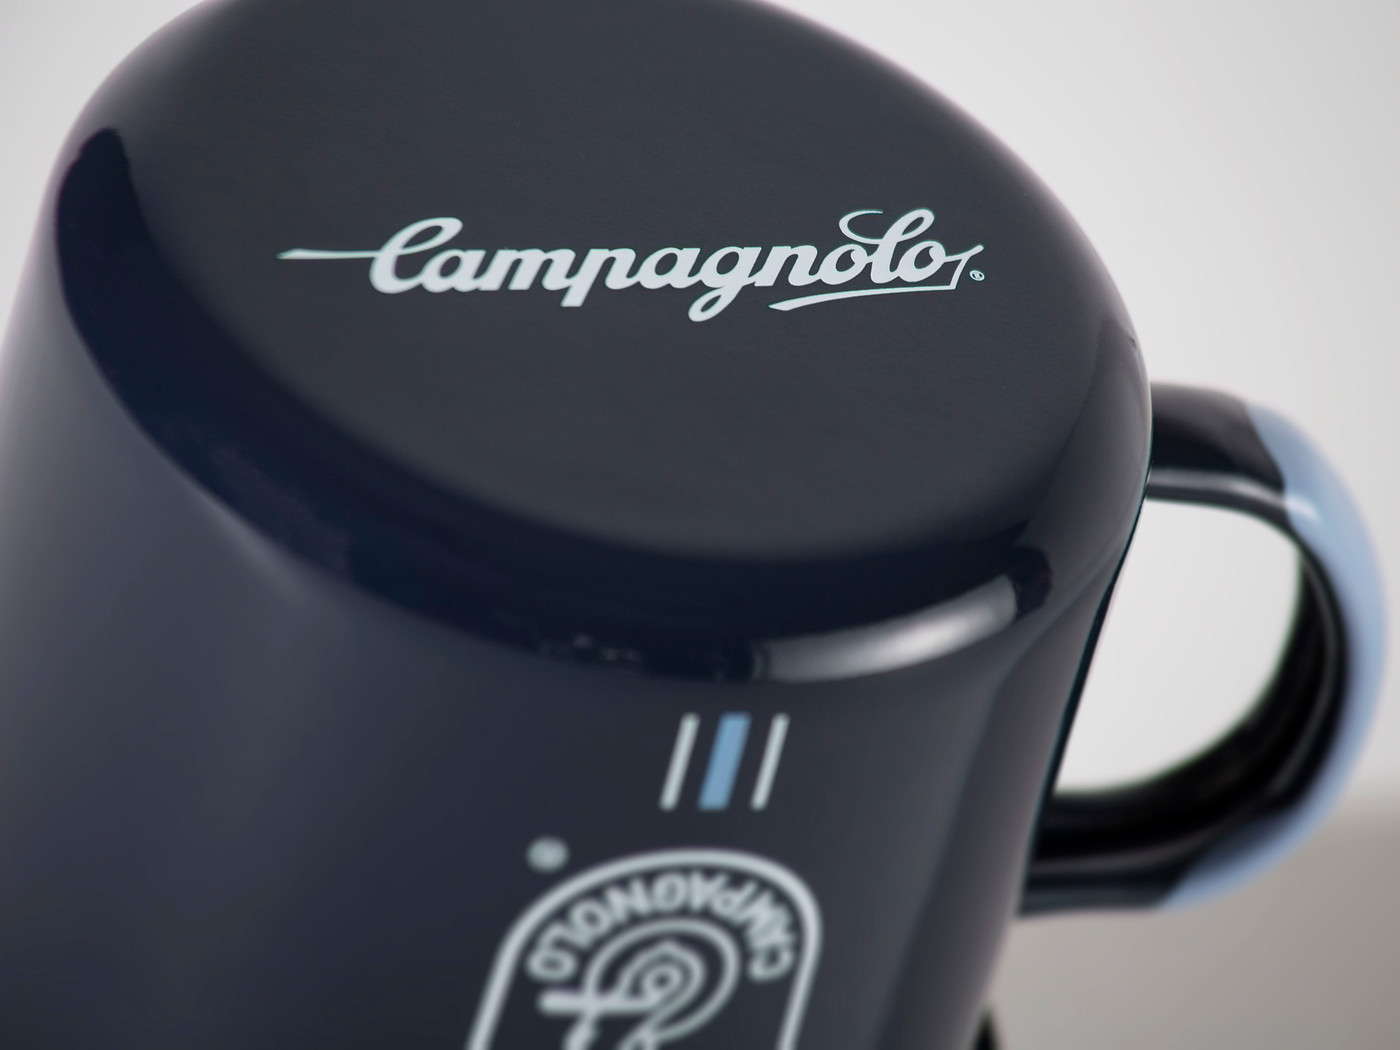 tasse caf campagnolo articles de collection campagnolo. Black Bedroom Furniture Sets. Home Design Ideas